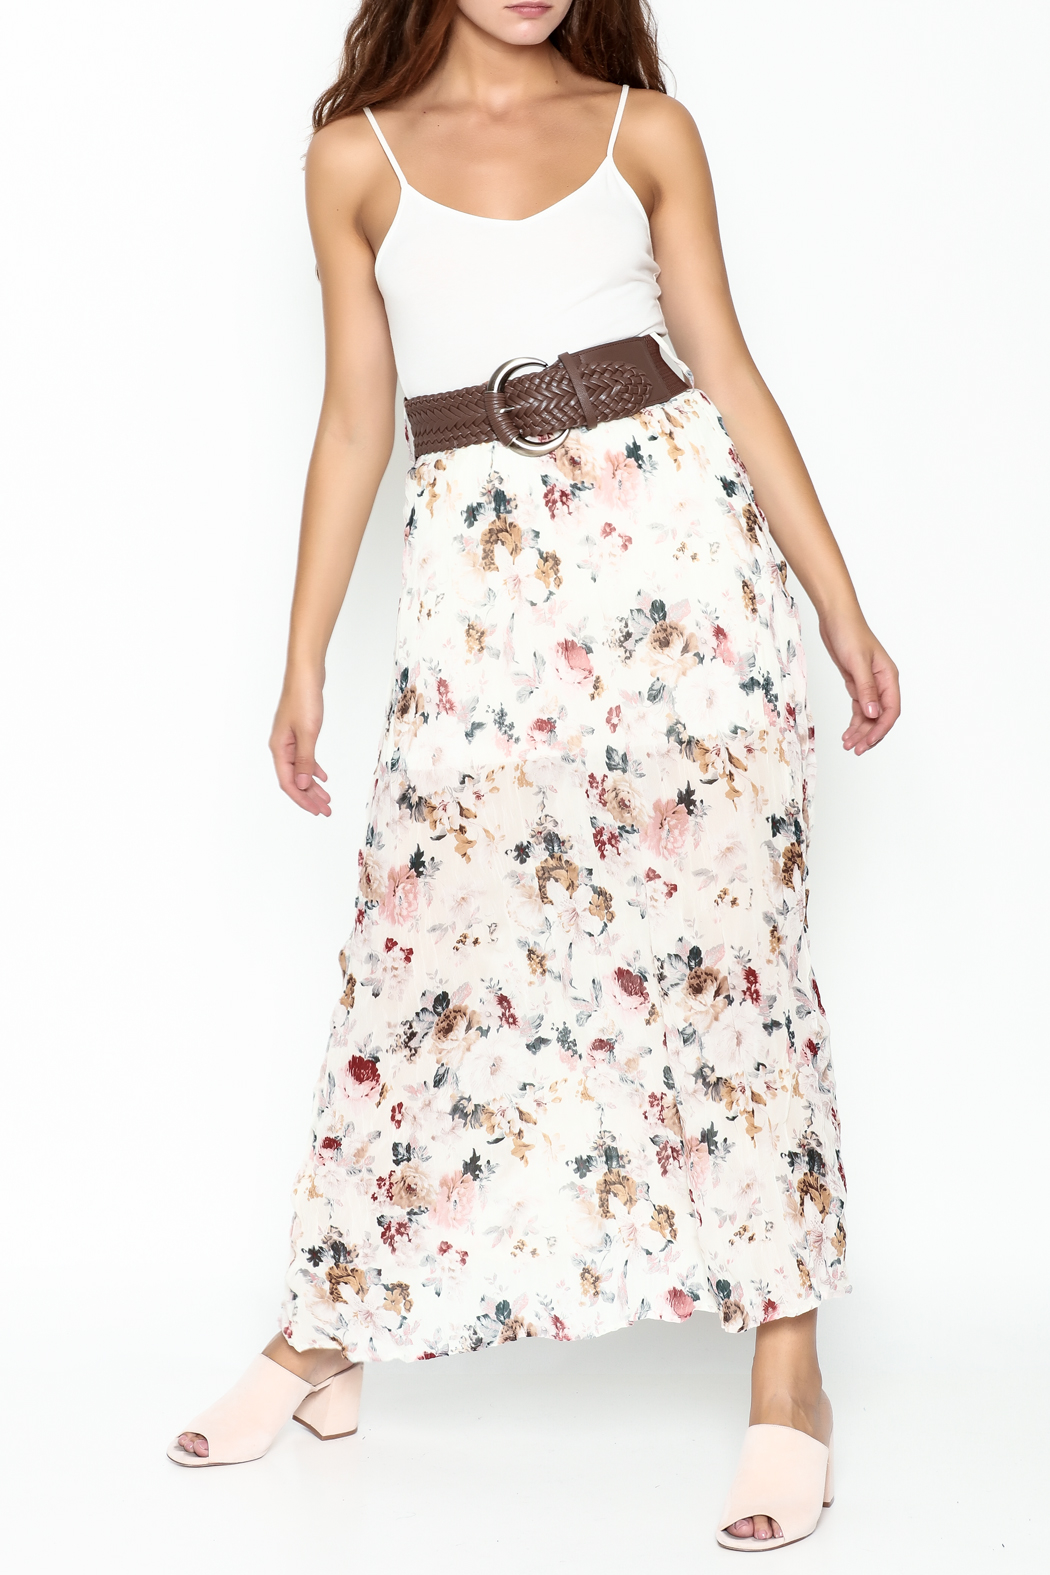 miss avenue  Belted Floral Skirt - Main Image